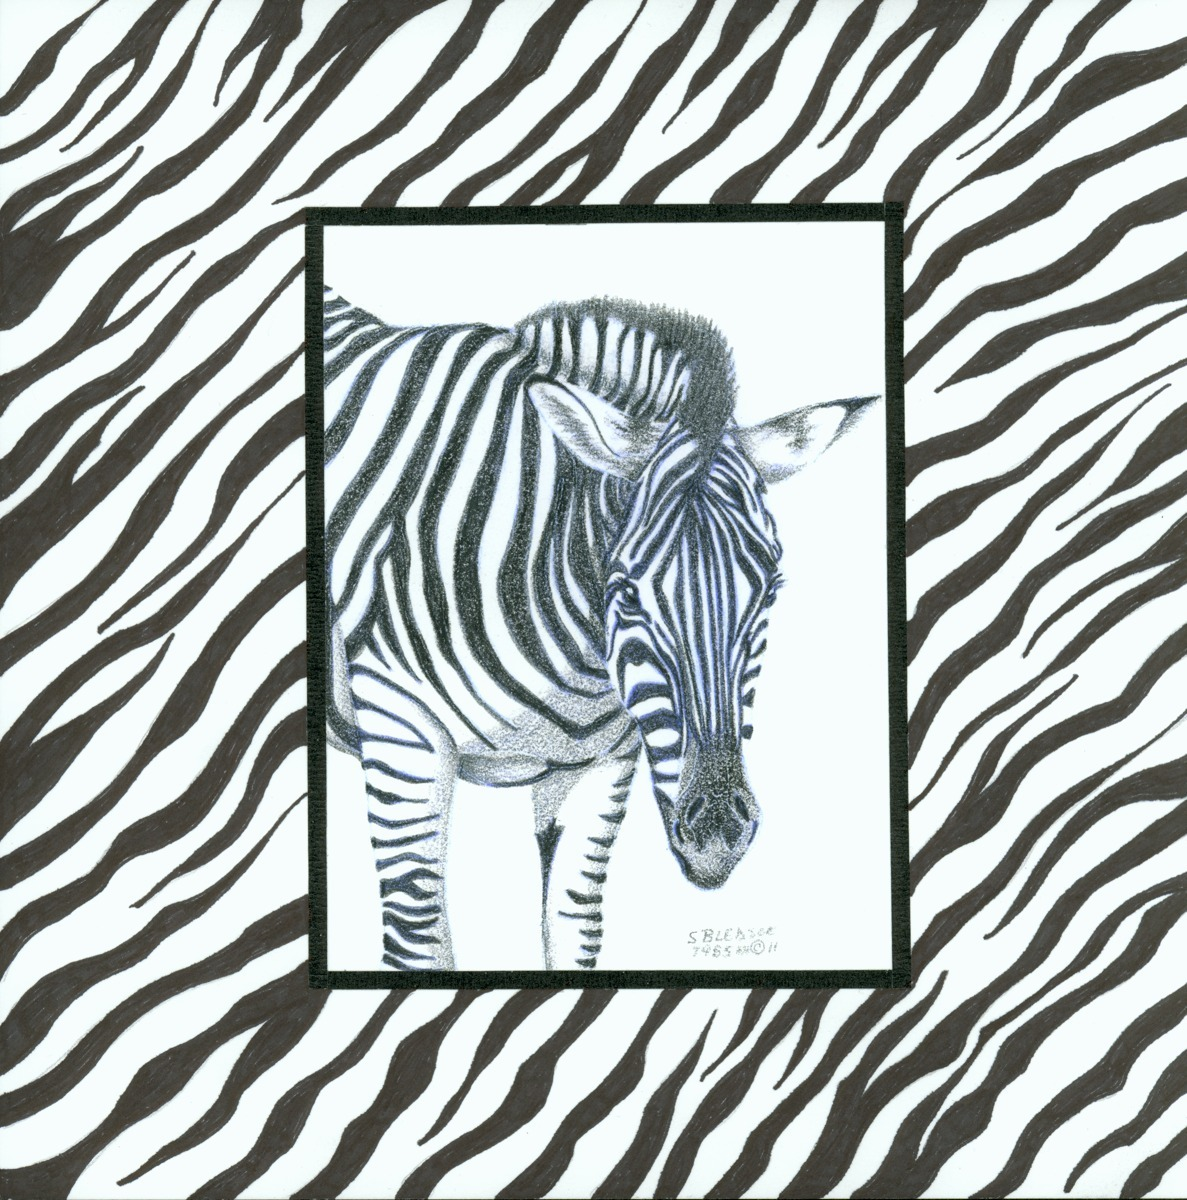 Zebra by Design (large view)